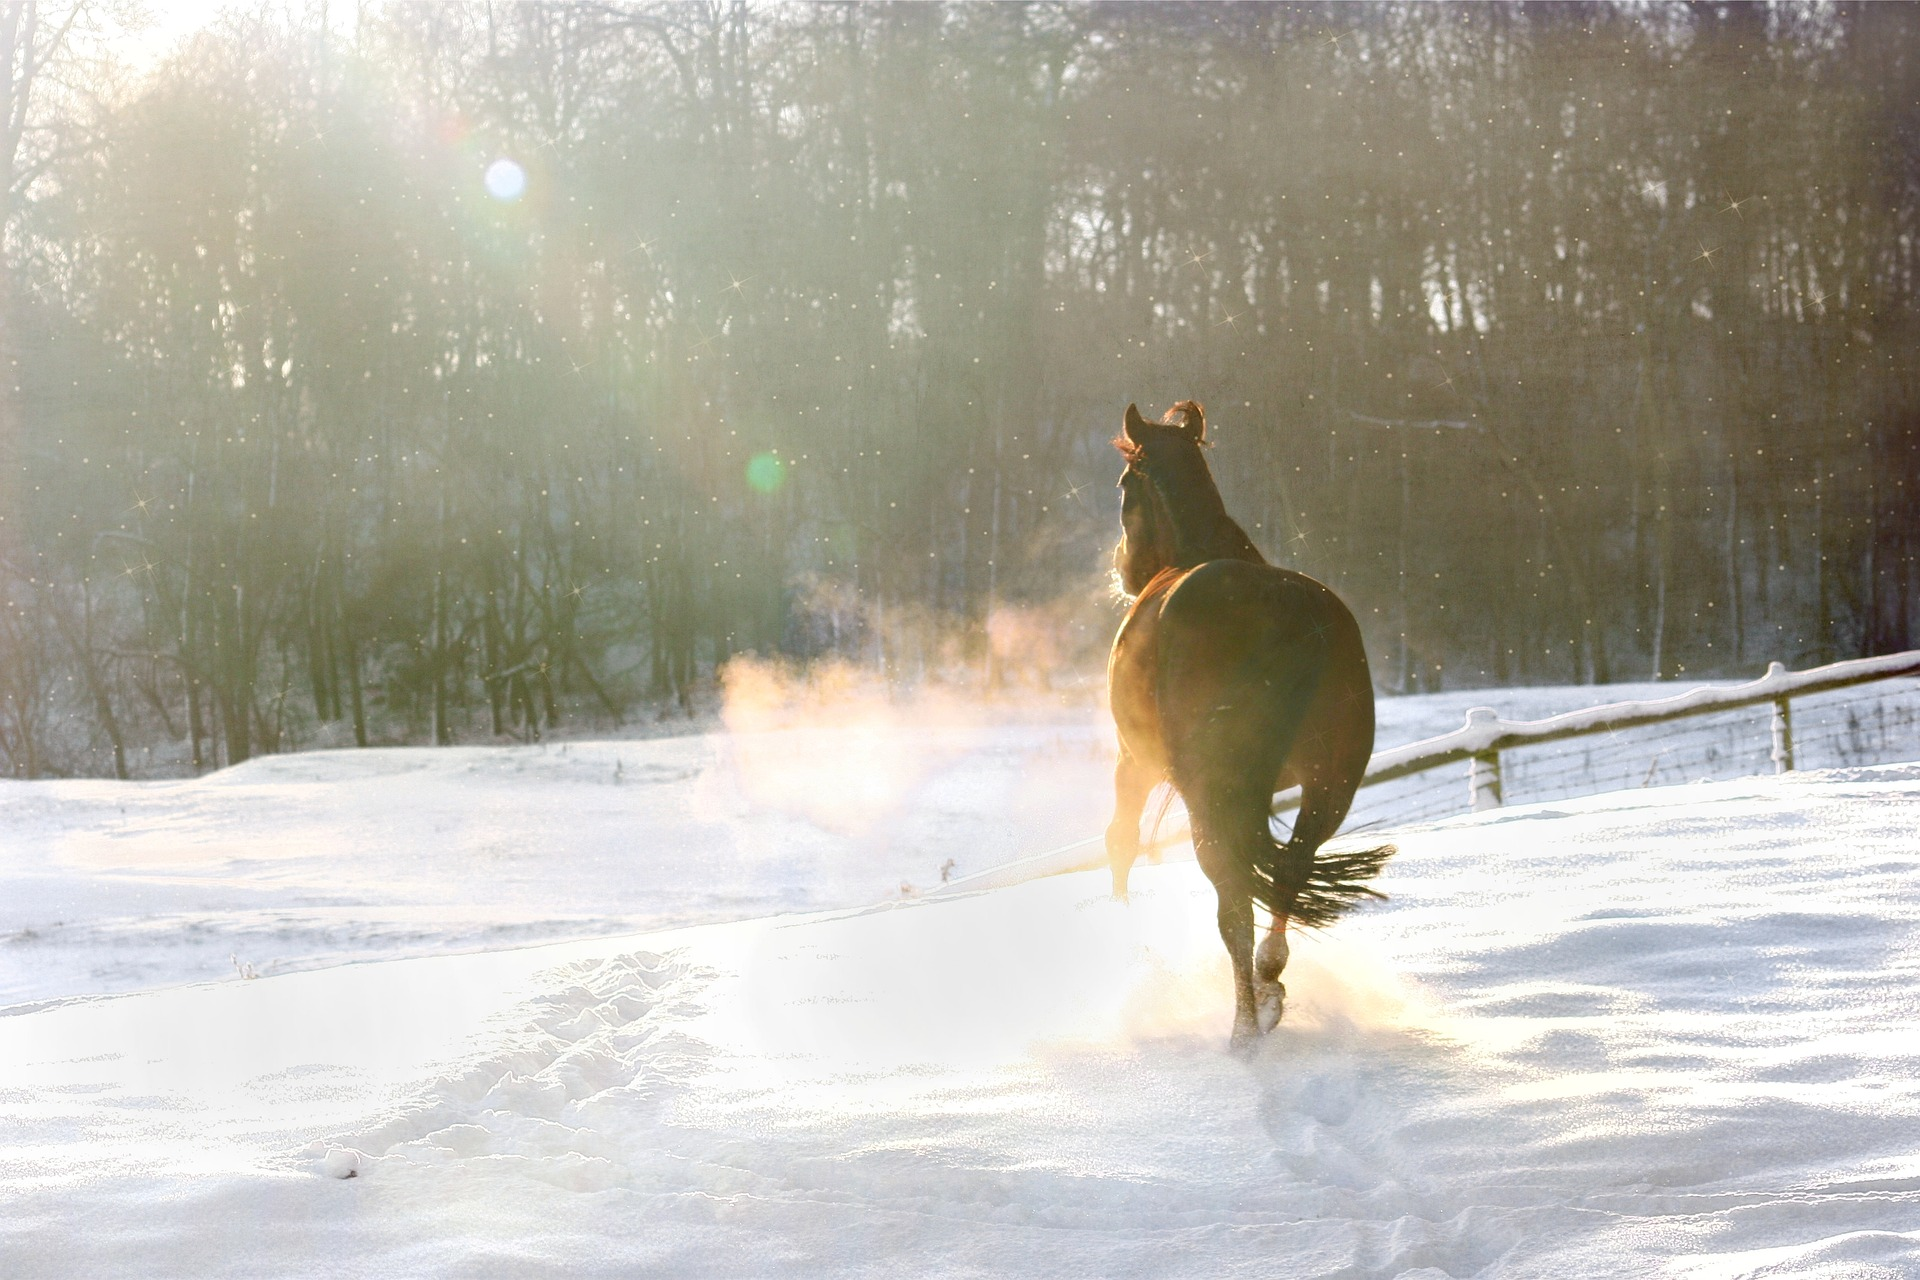 Winter. Come for the beauty,stay for the... no, don't stay. Take your horse and head south!